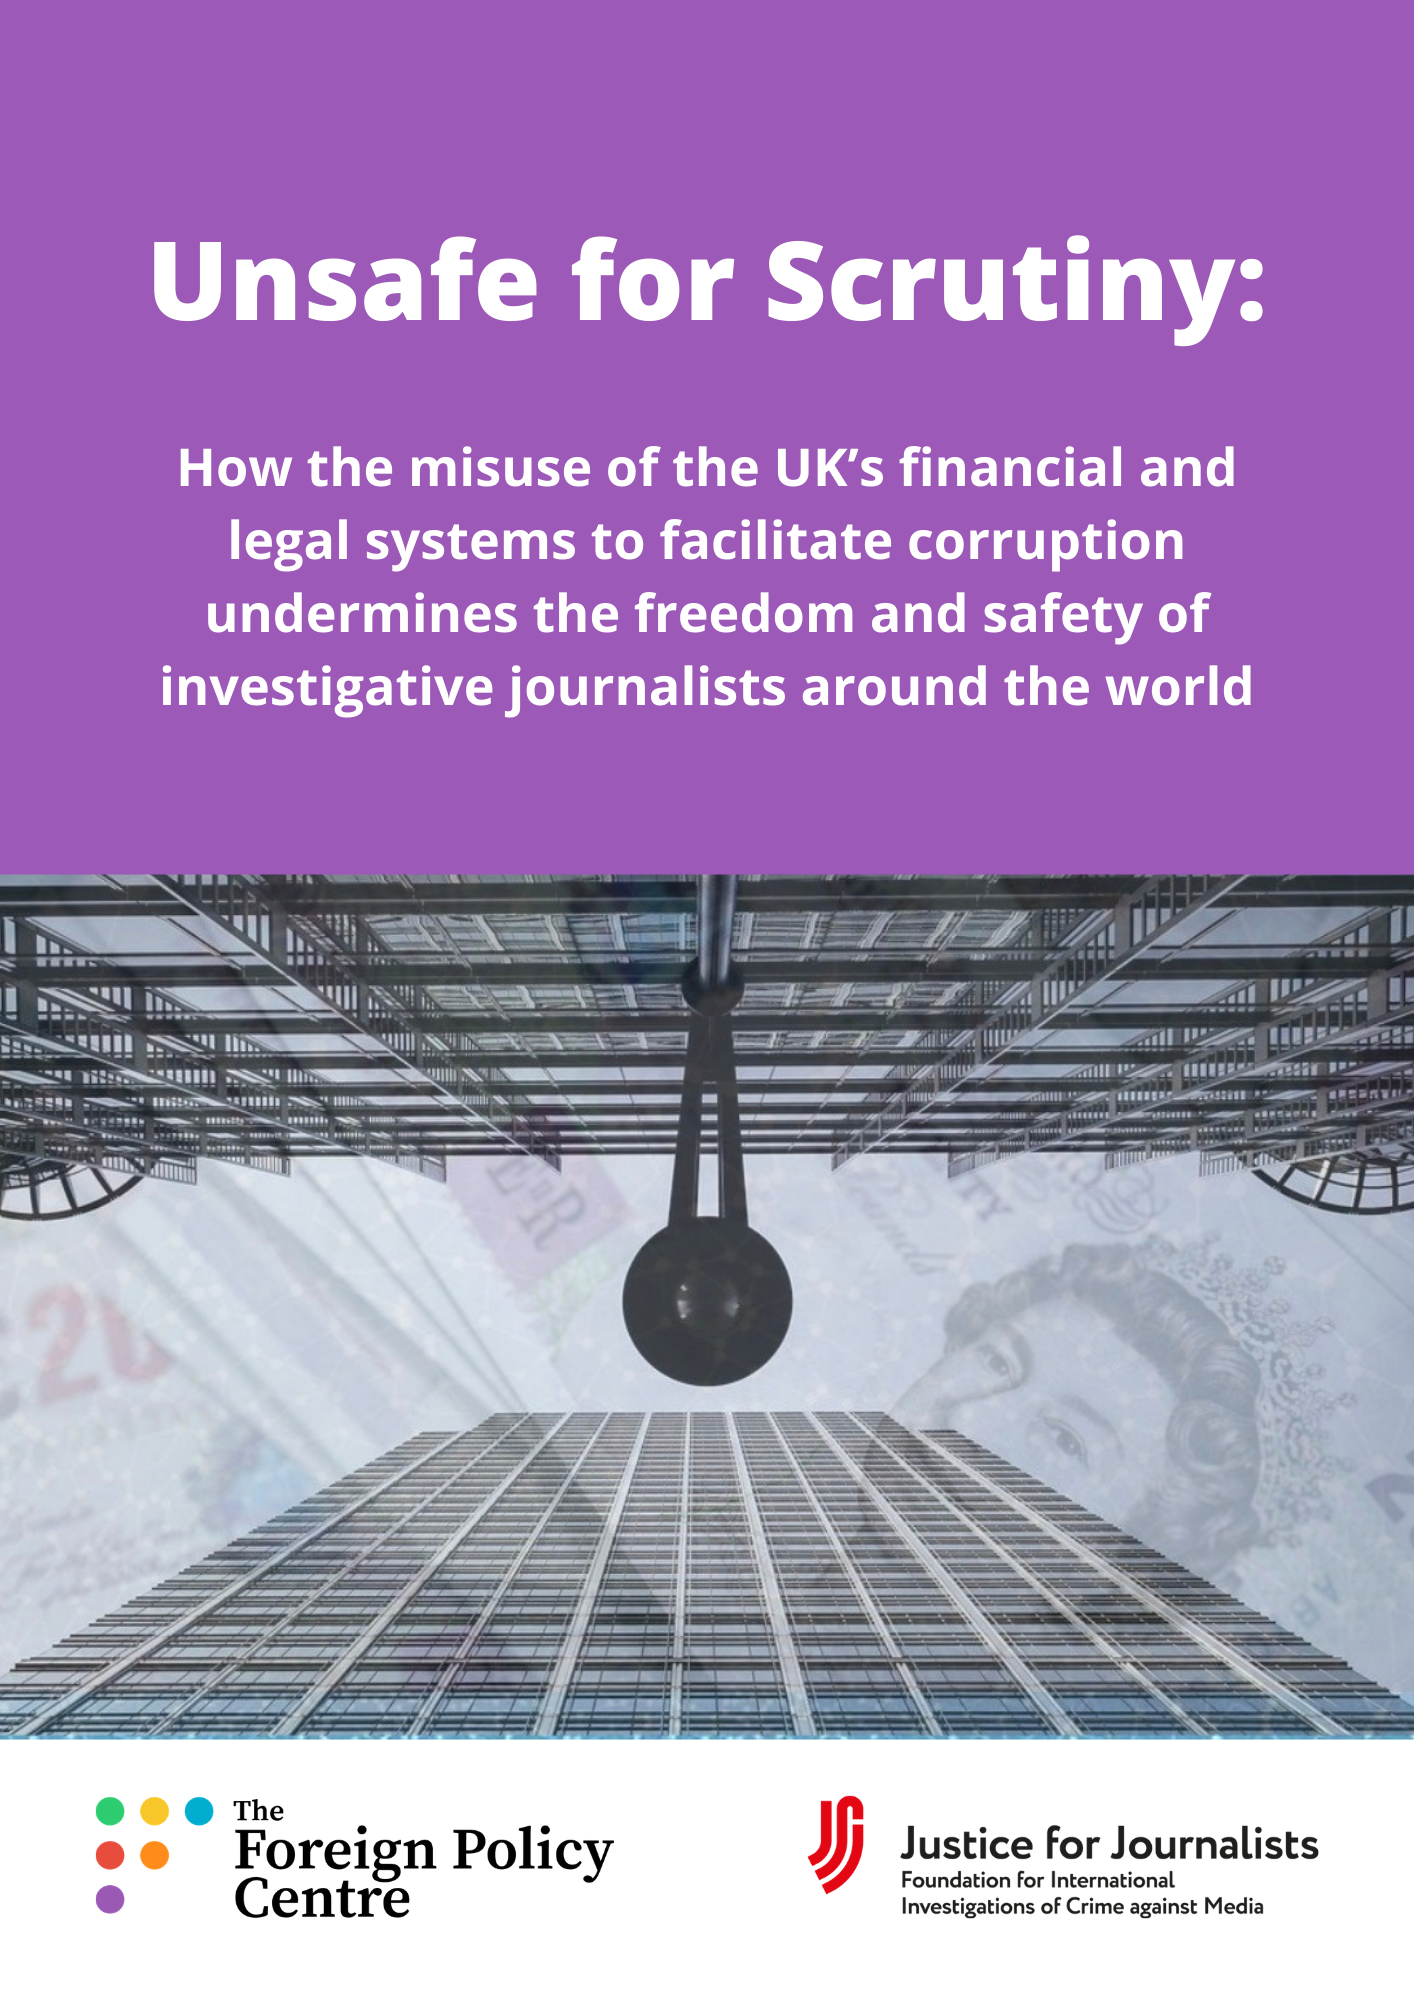 Unsafe for Scrutiny: How the misuse of the UK's financial and legal systems to facilitate corruption undermines the freedom and safety of investigative journalists around the world